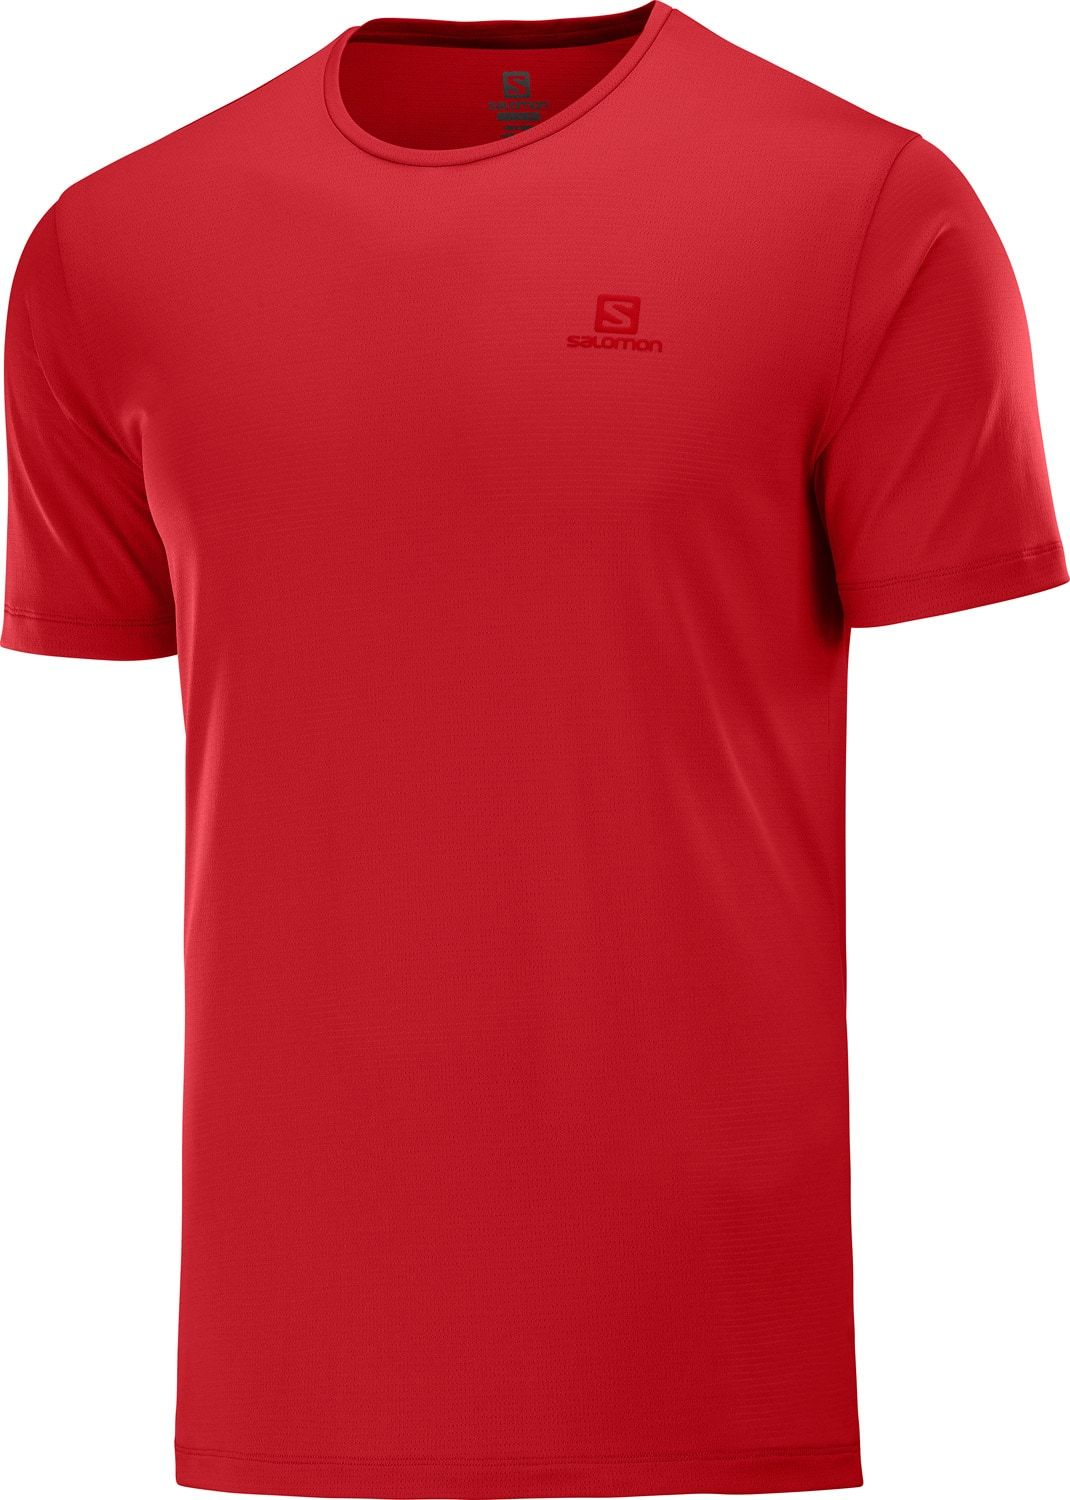 The lightweight AGILE TRAINING TEE focuses on comfort and breathability - even in those tough uphill climbs - with soft, quick-drying fabric. It feels good over long distances, so you can really push yourself while you run, hike or bike. Body: 59% Polyamide, 41% Polyester  AdvancedSkin ActiveDry  Mechanical Stretch  Weight (grams): 77 - $26.95